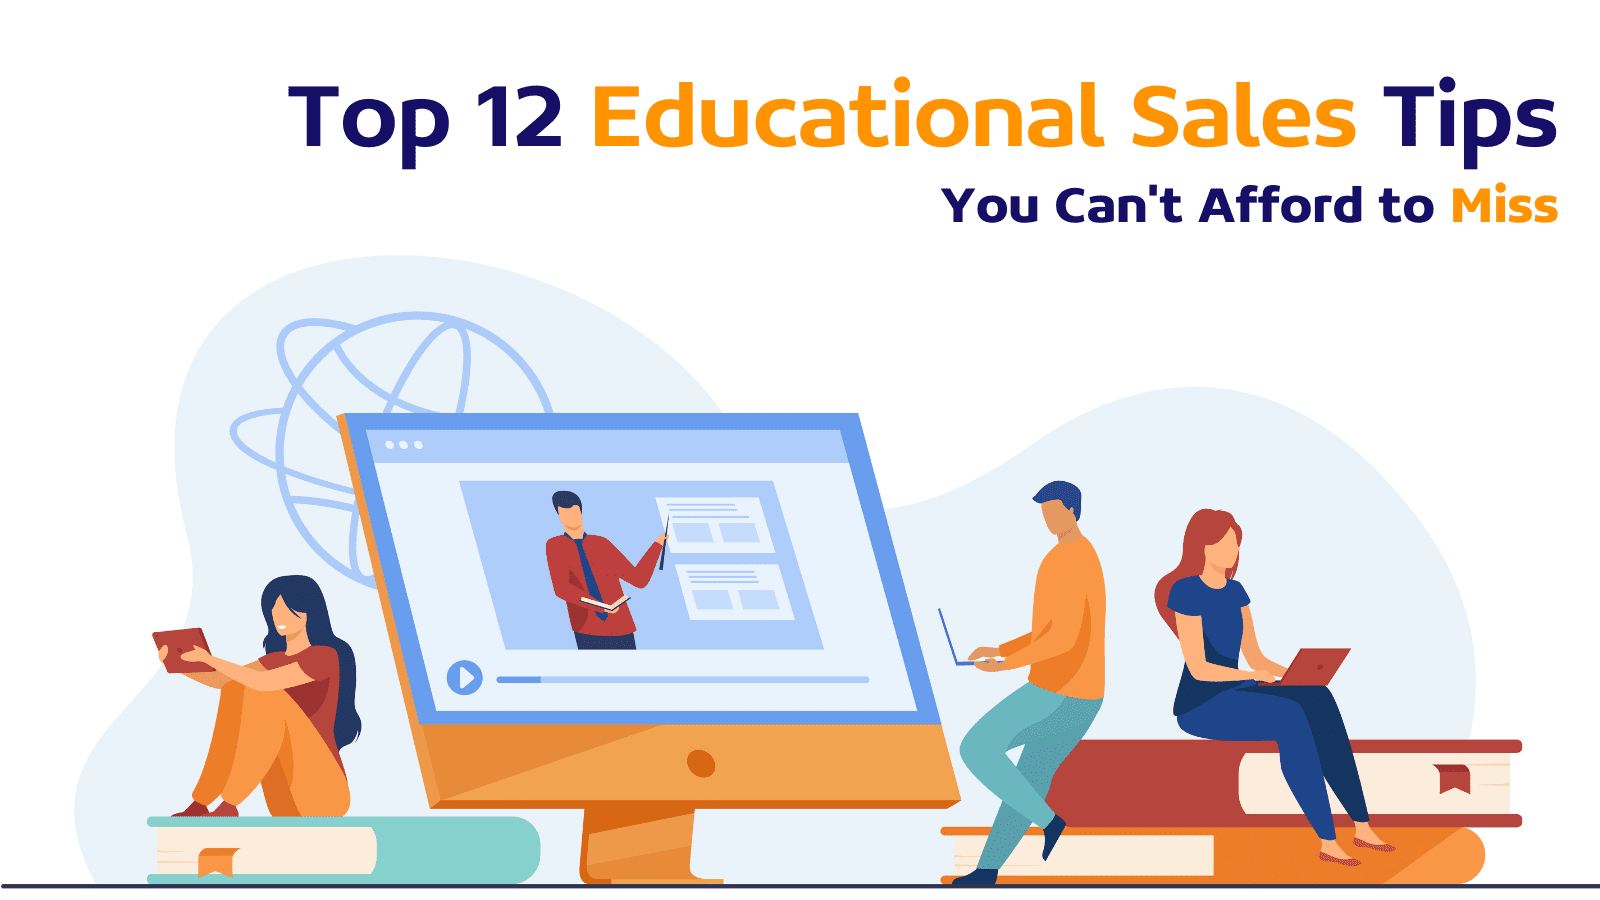 Top 12 Essential Tips from Educational Sales Pros You Can't Afford to Miss